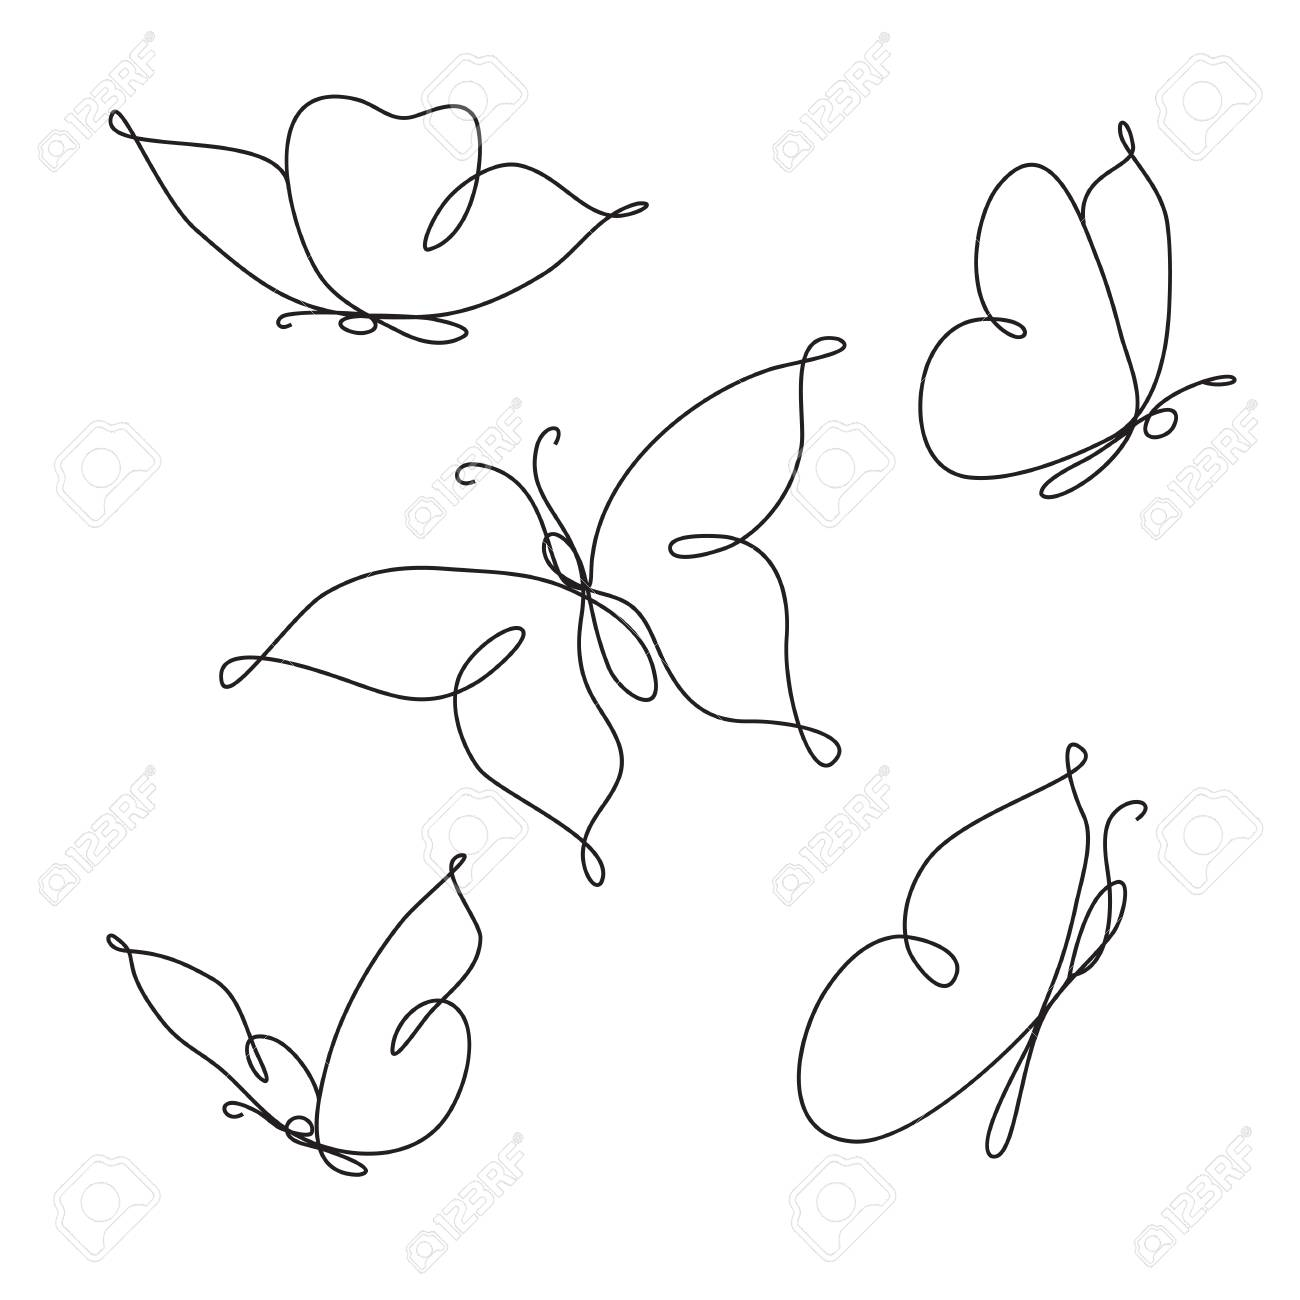 Line art butterfly abstract modern decoration vector illustration one line drawing fancy